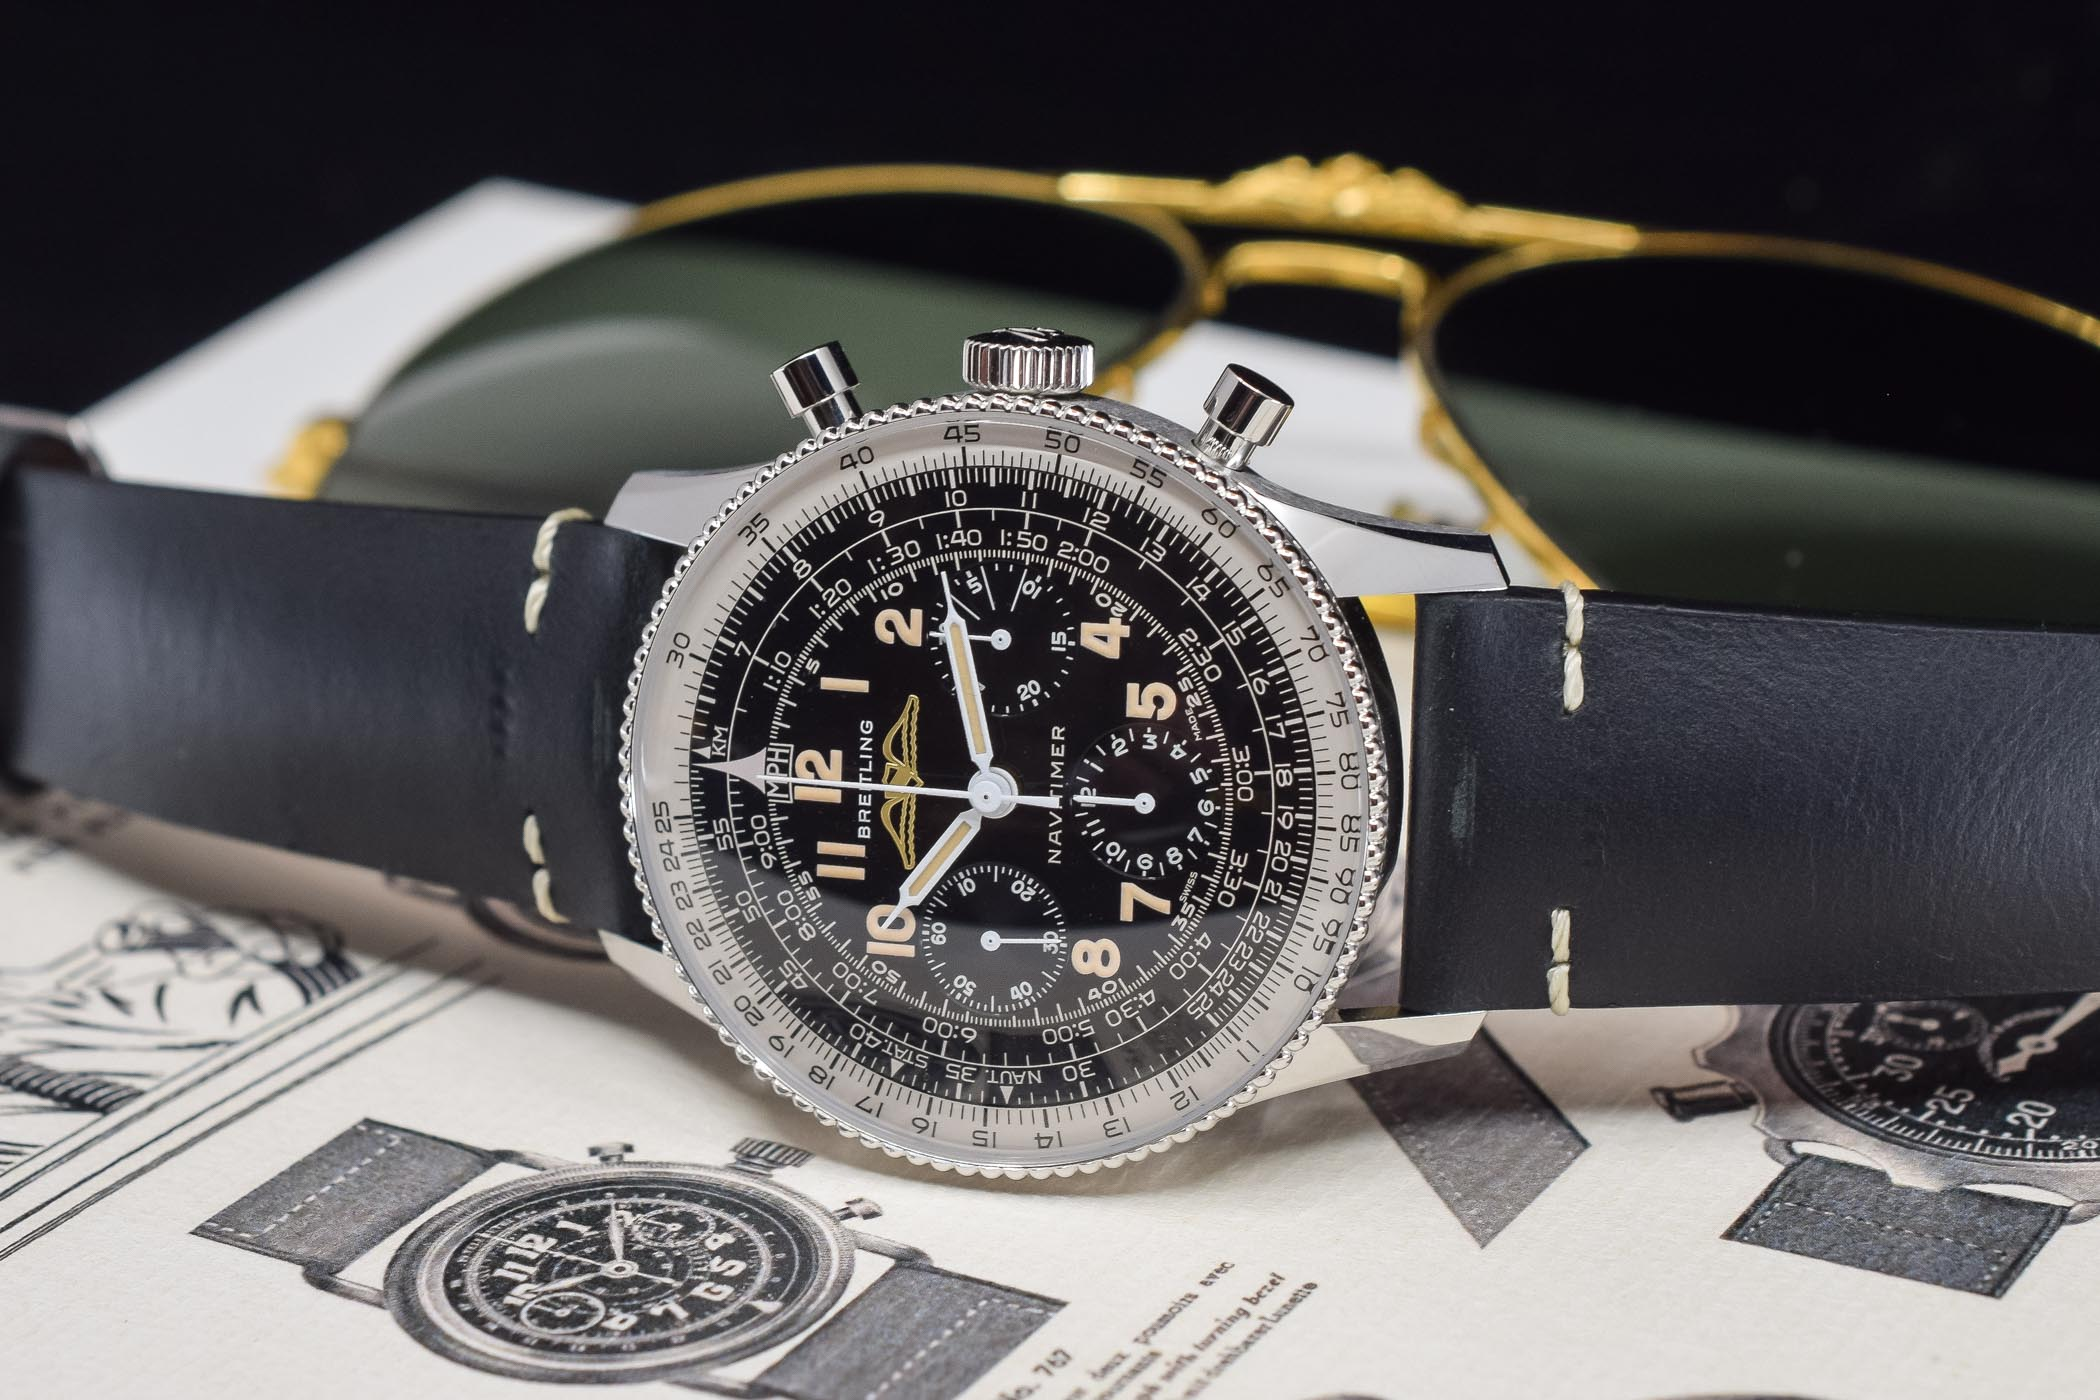 Review Breitling Navitimer Ref 806 1959 Re Edition Specs Price